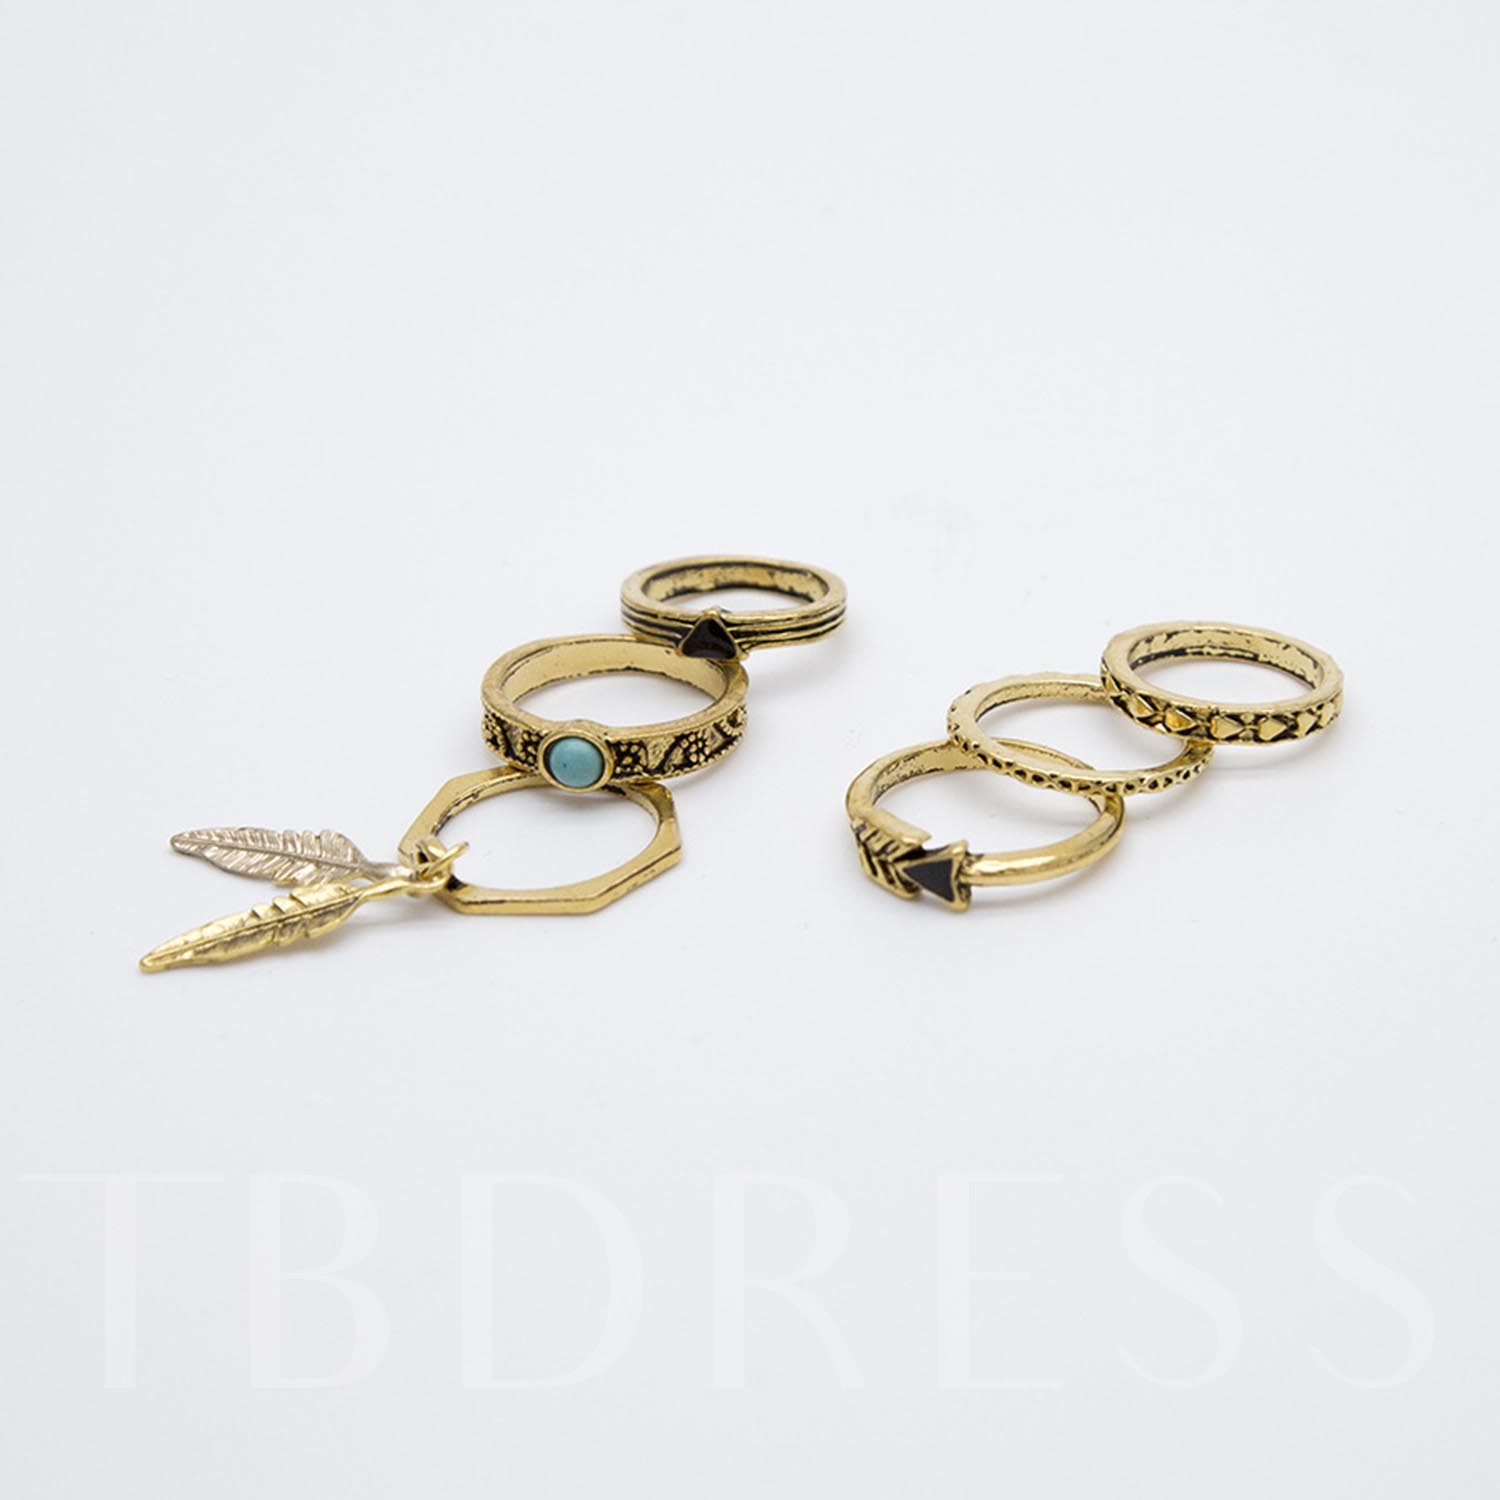 Plastic Leaf Shaped Rings Set